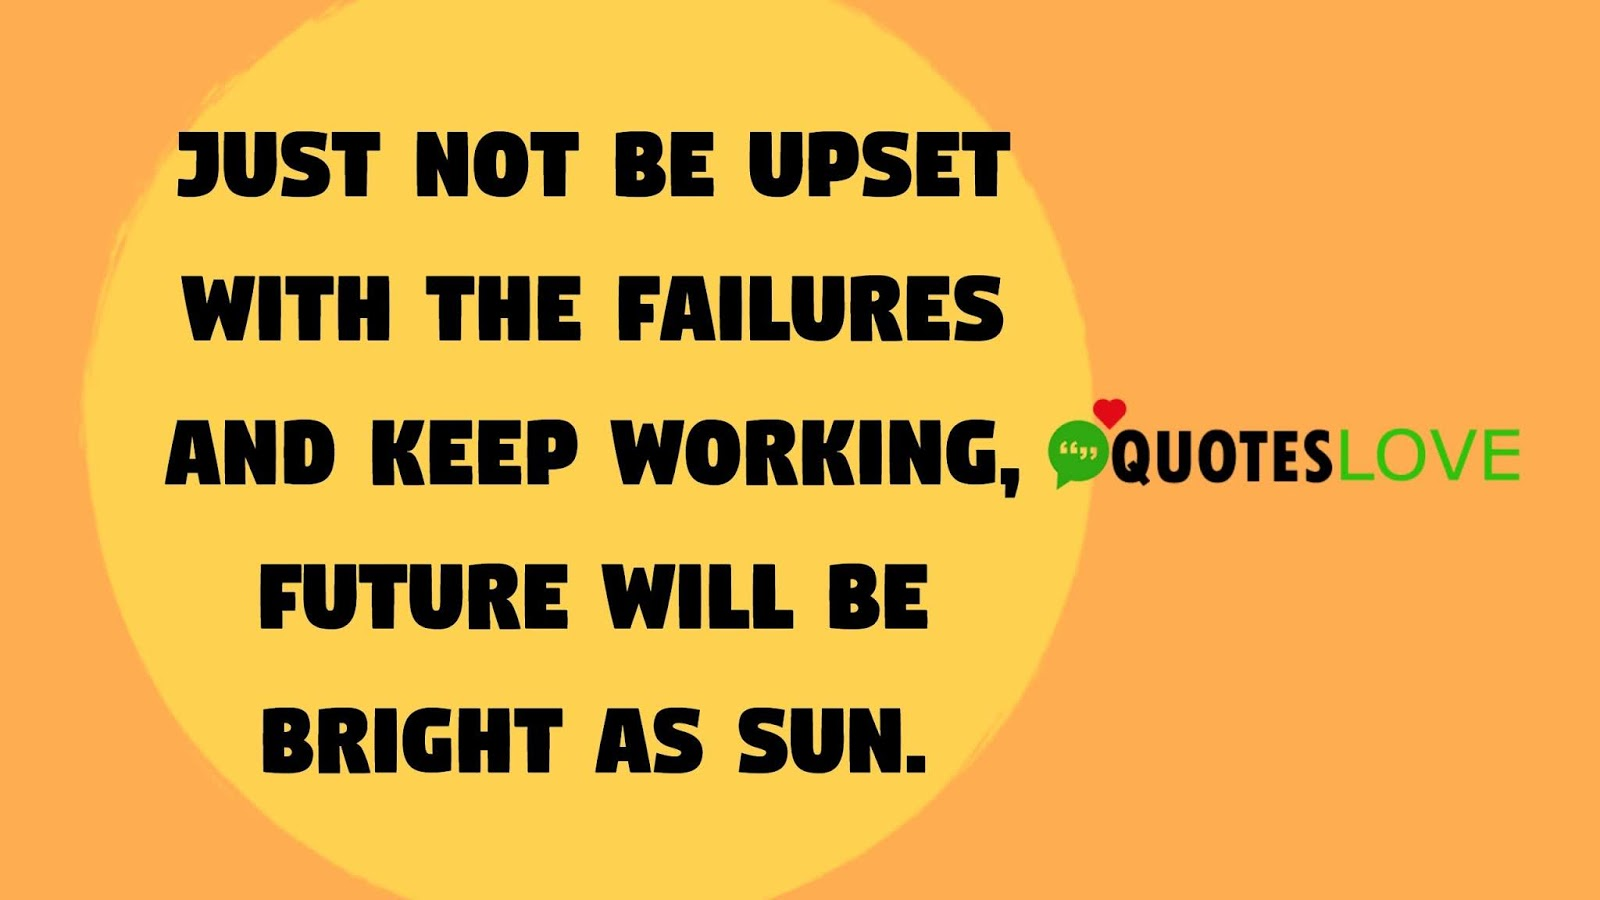 Just not be upset with the failures and keep working, future will be bright as sun.